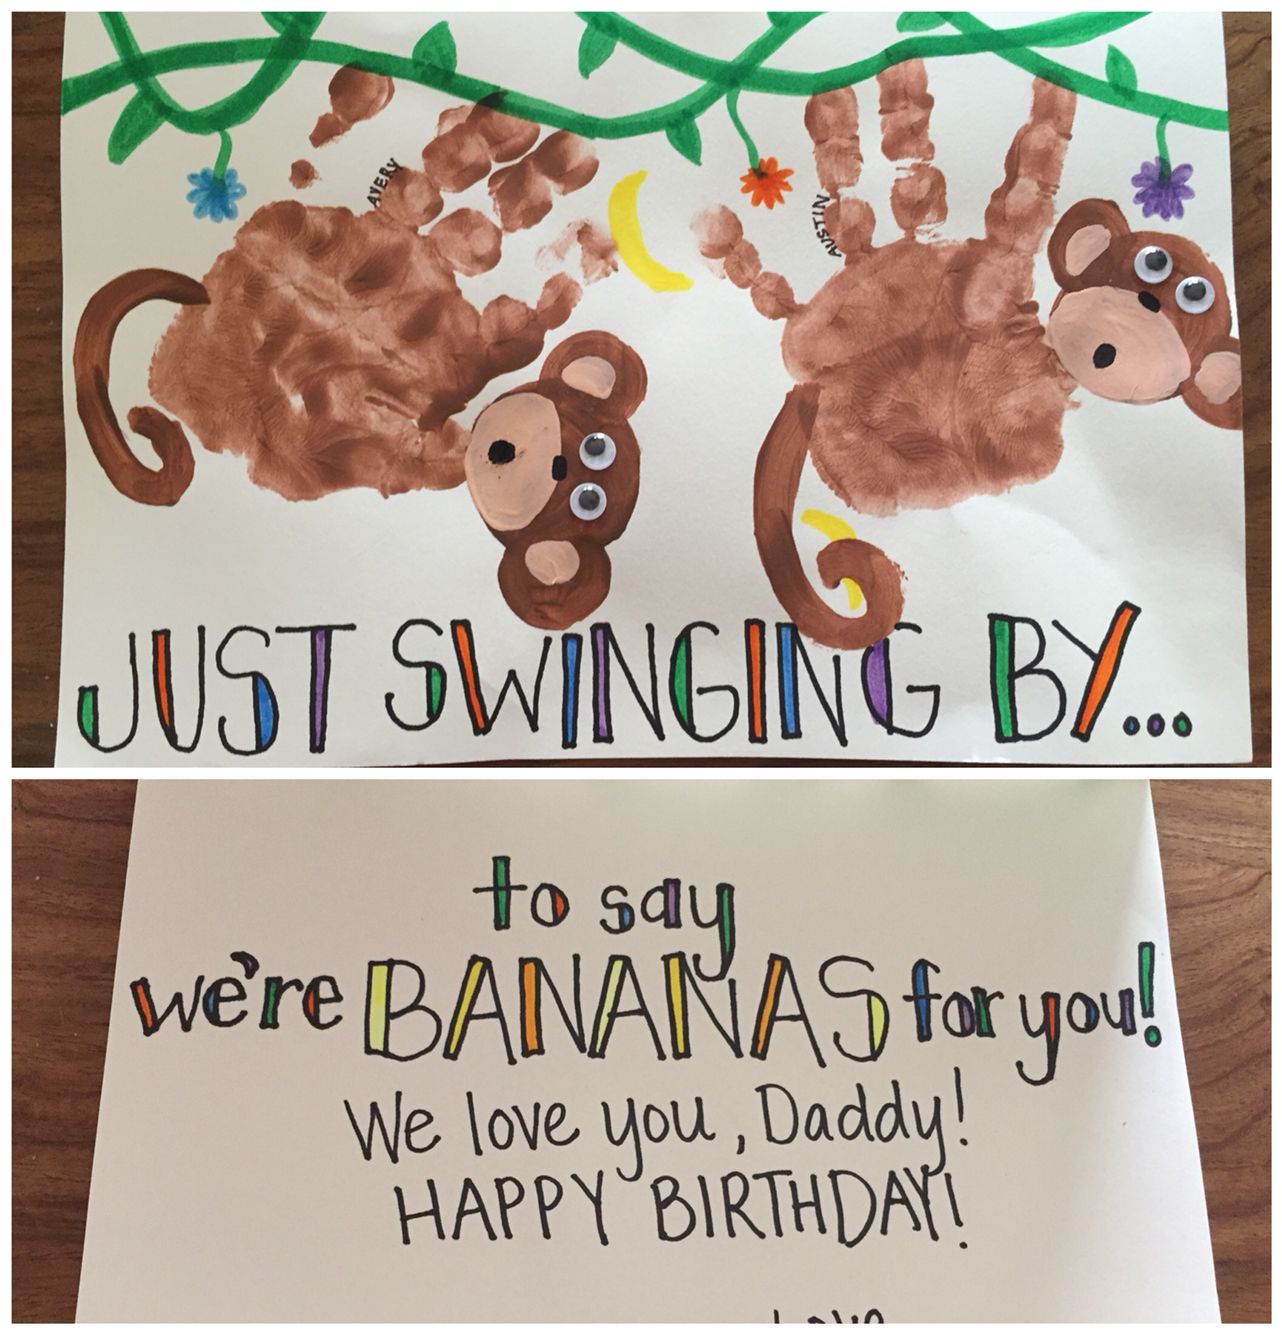 Handprint monkey birthday card Swinging in to say were bananas for